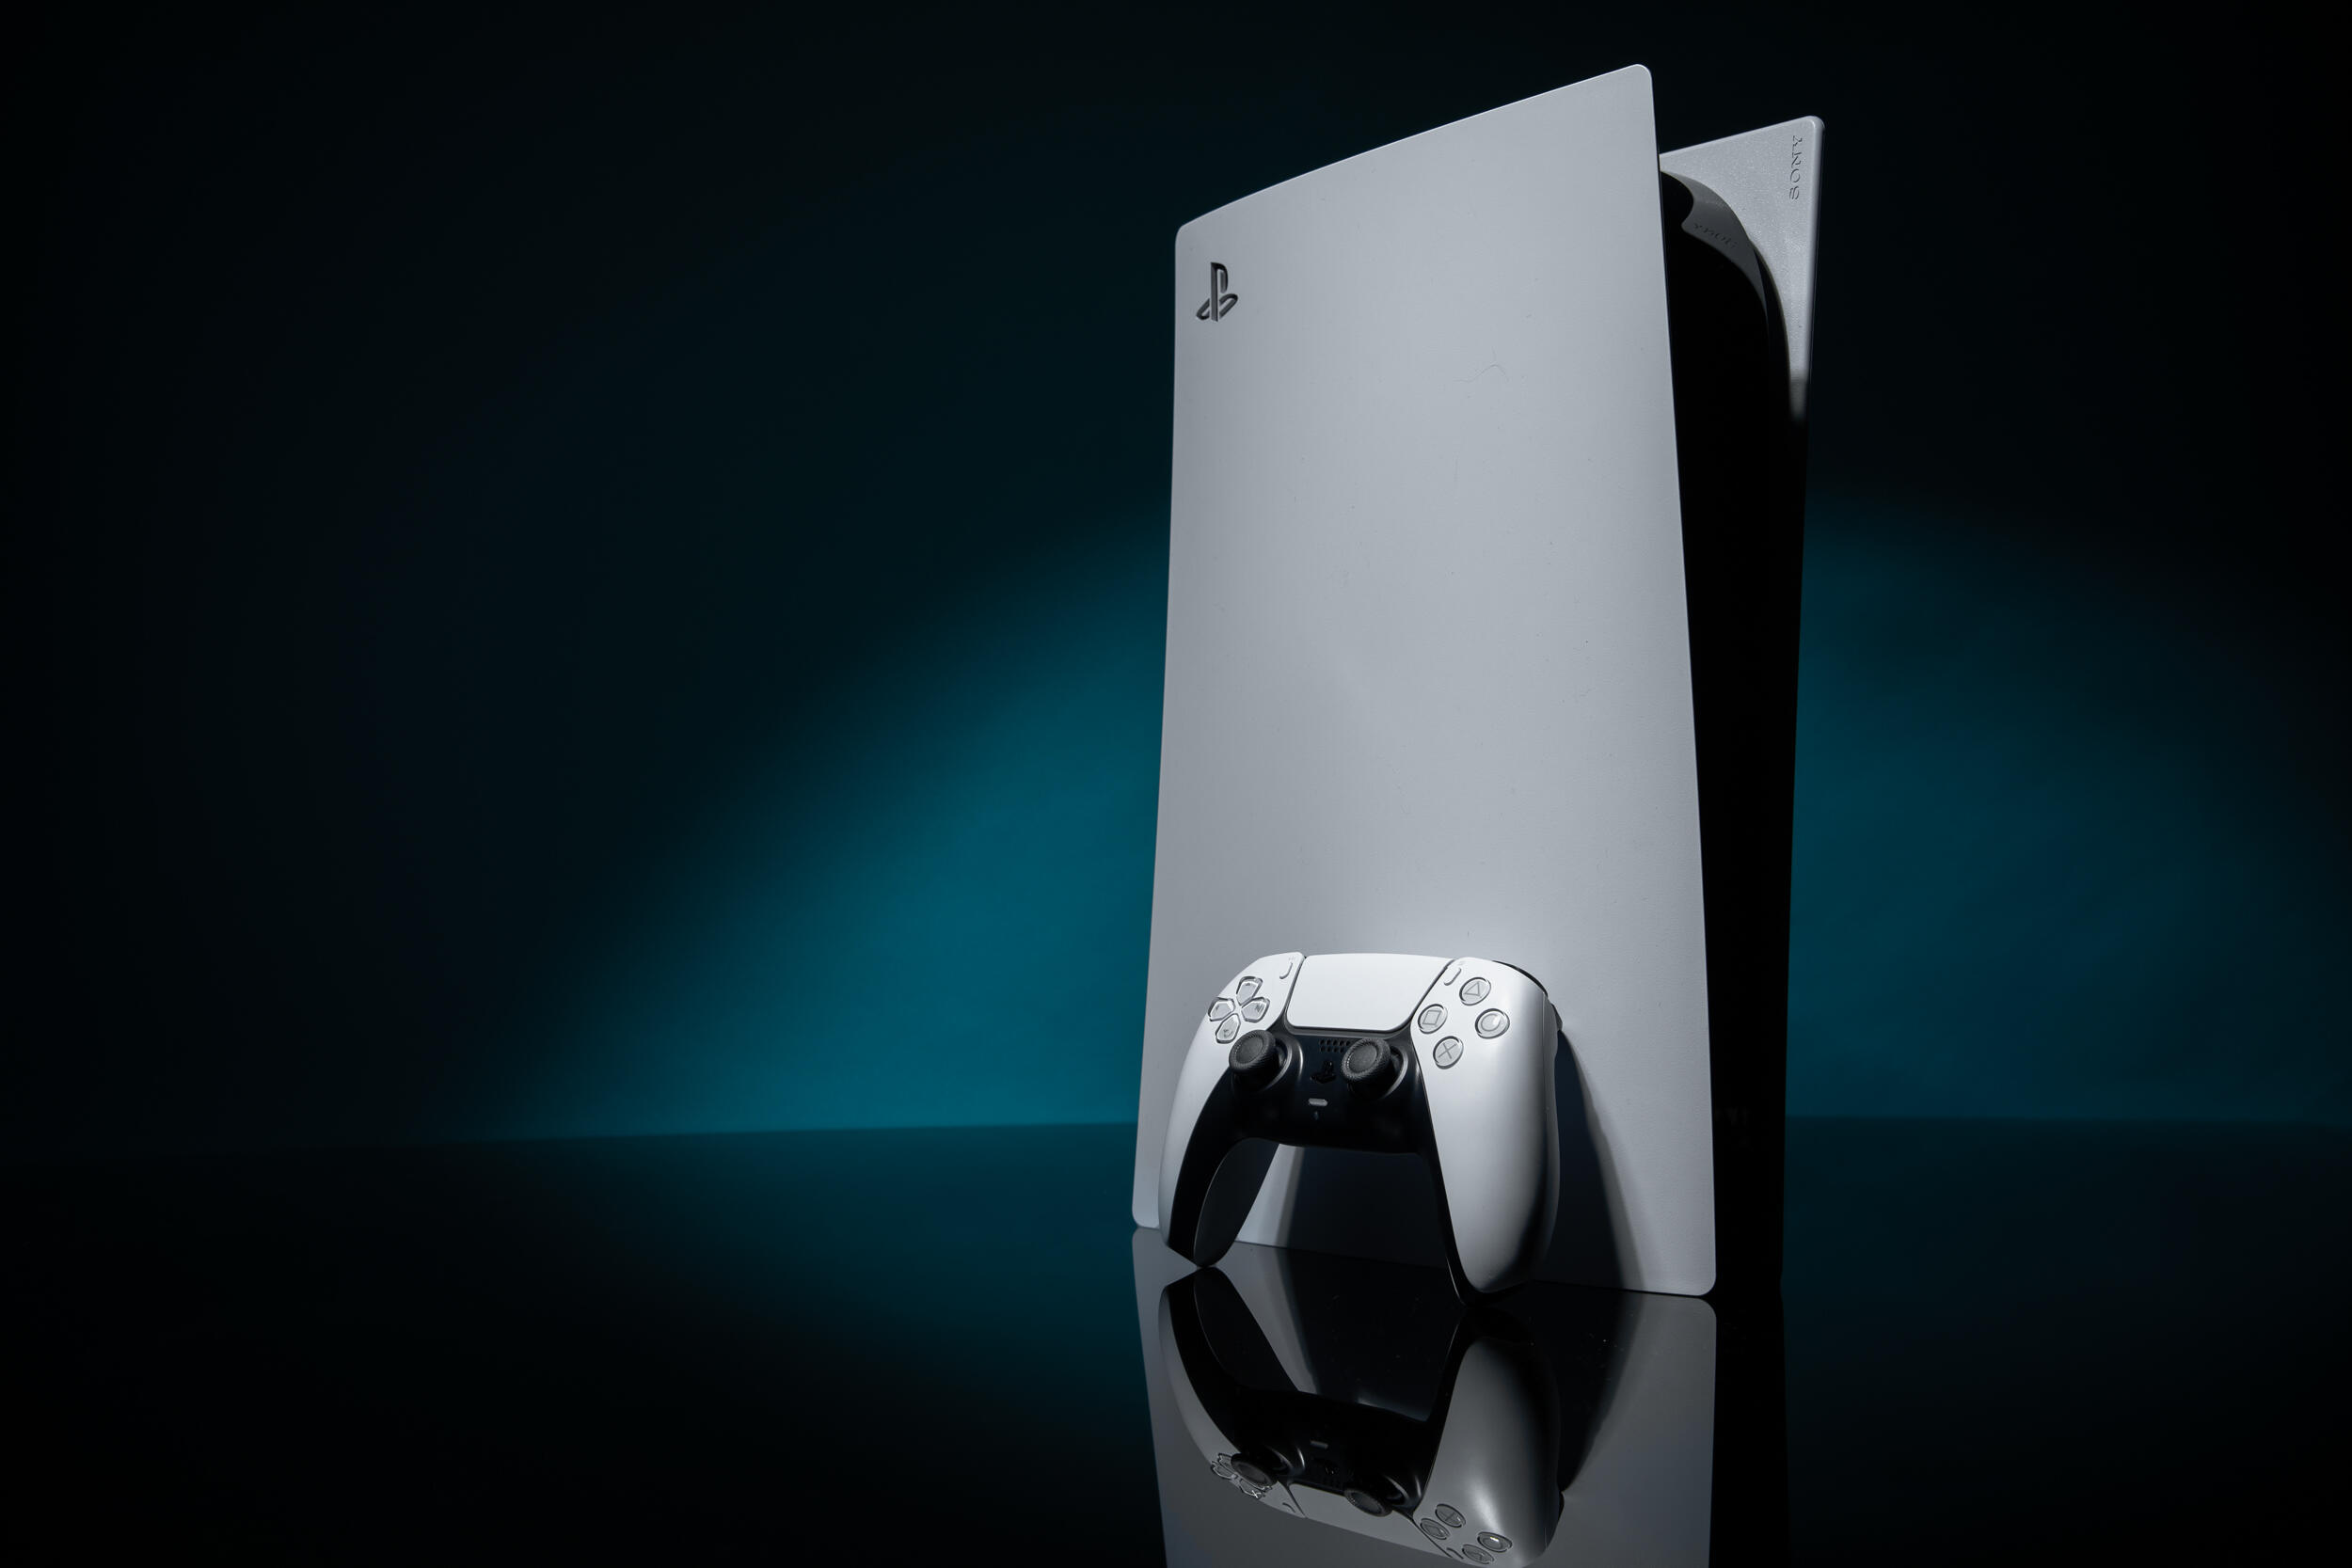 , Sony's April update gives PS5 new external storage options – Source CNET Computer News, iBSC Technologies - learning management services, LMS, Wordpress, CMS, Moodle, IT, Email, Web Hosting, Cloud Server,Cloud Computing